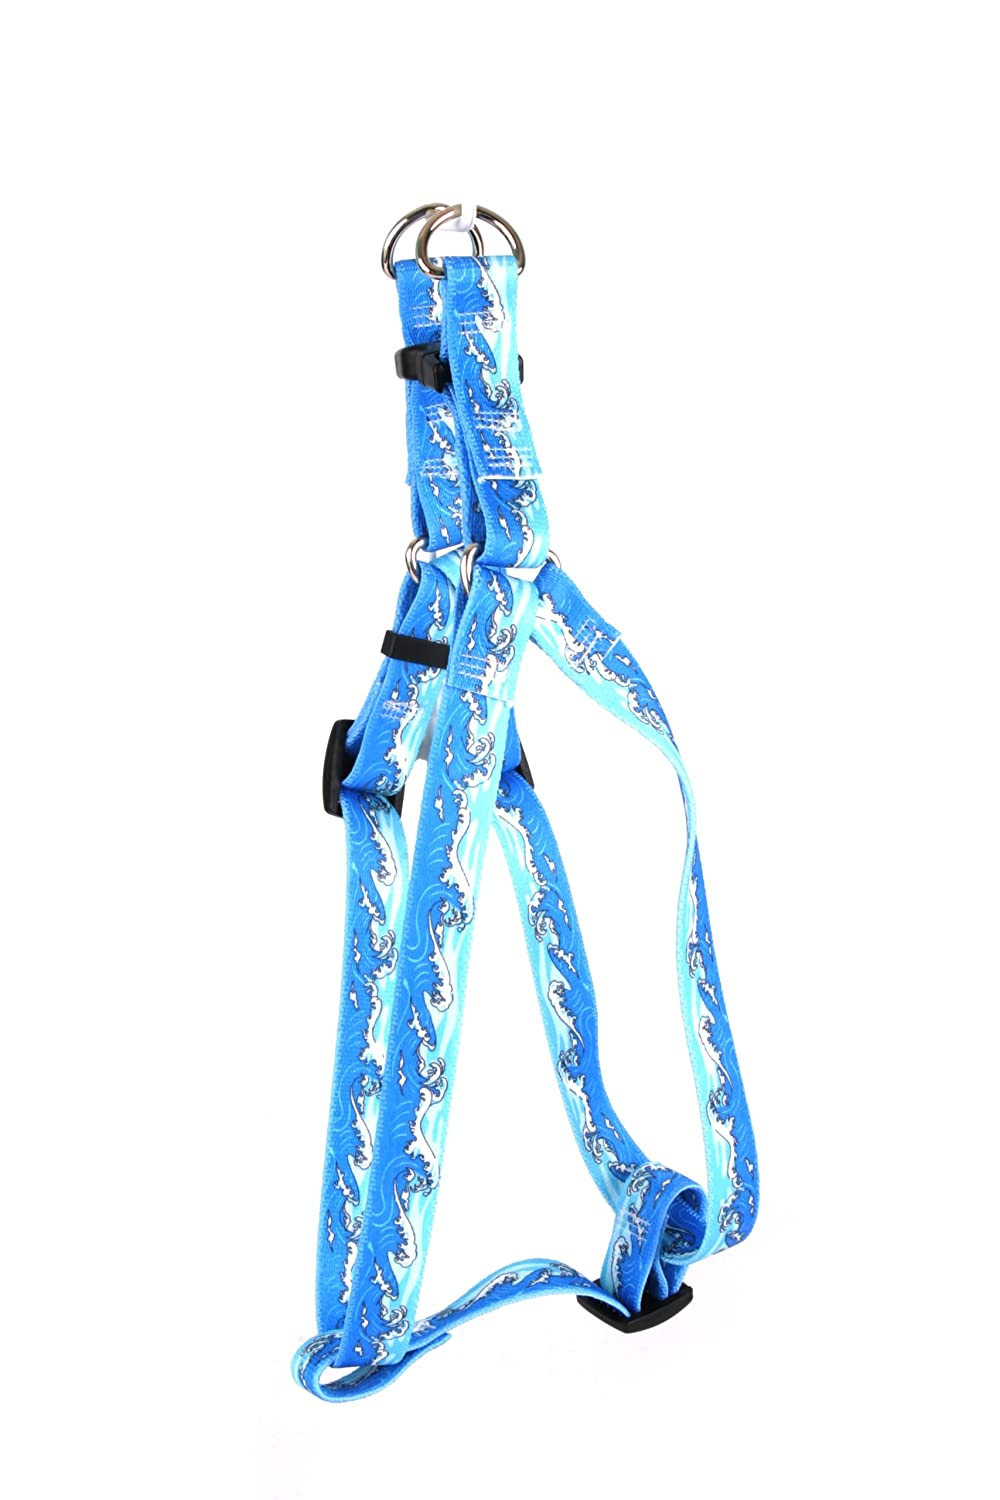 M Yellow Dog Design Step-In Harness, Medium, Mystic Waves bluee